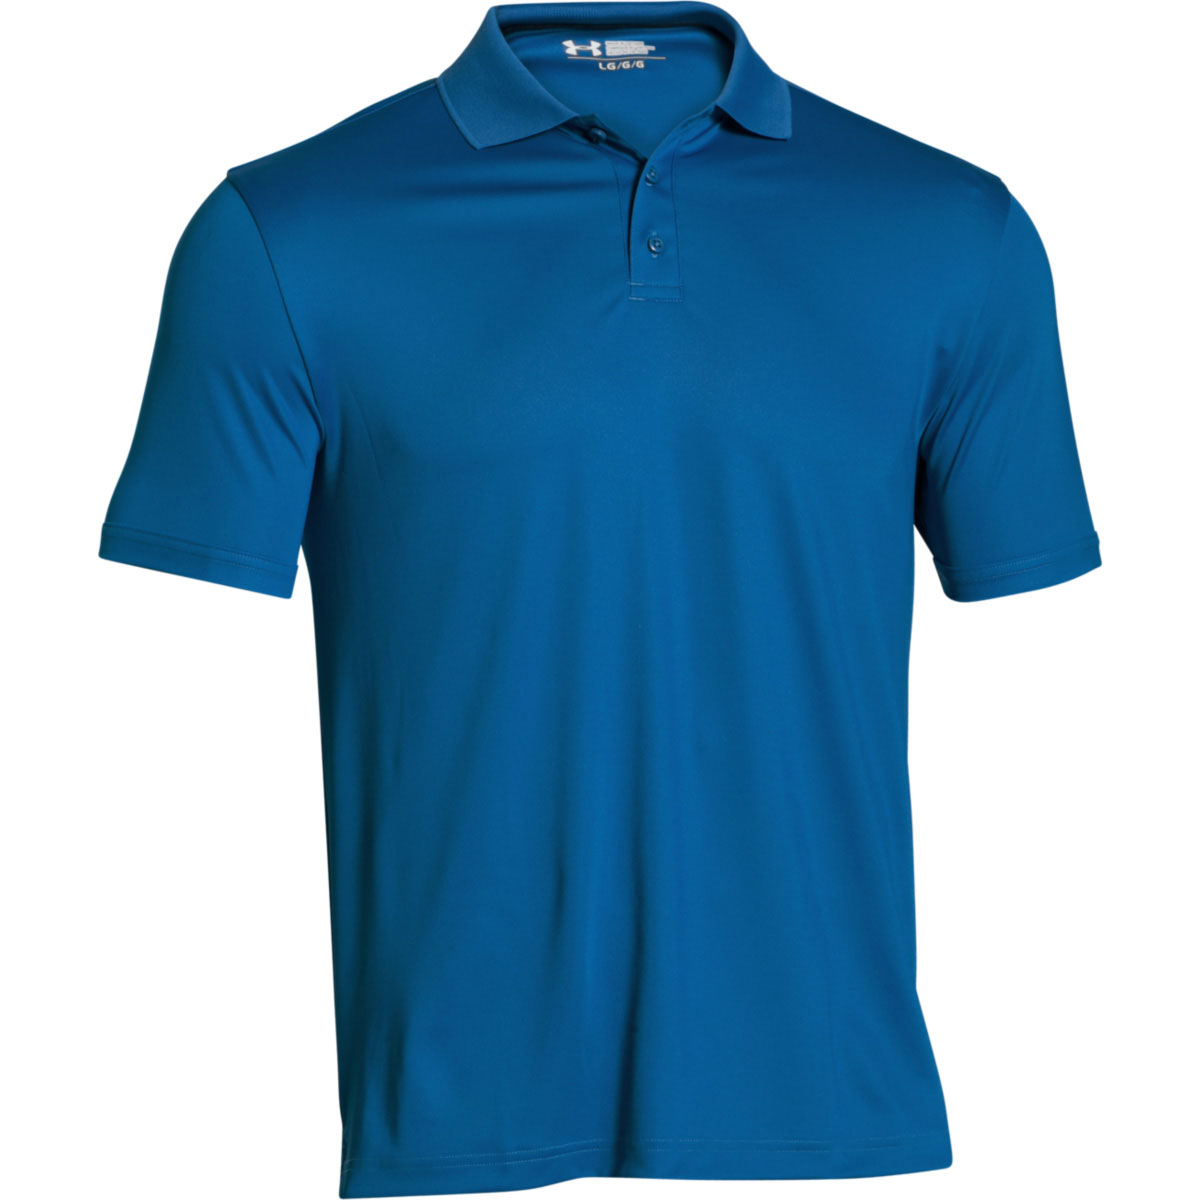 Under Armour 2017 Mens Medal Play Performance Polo Shirt